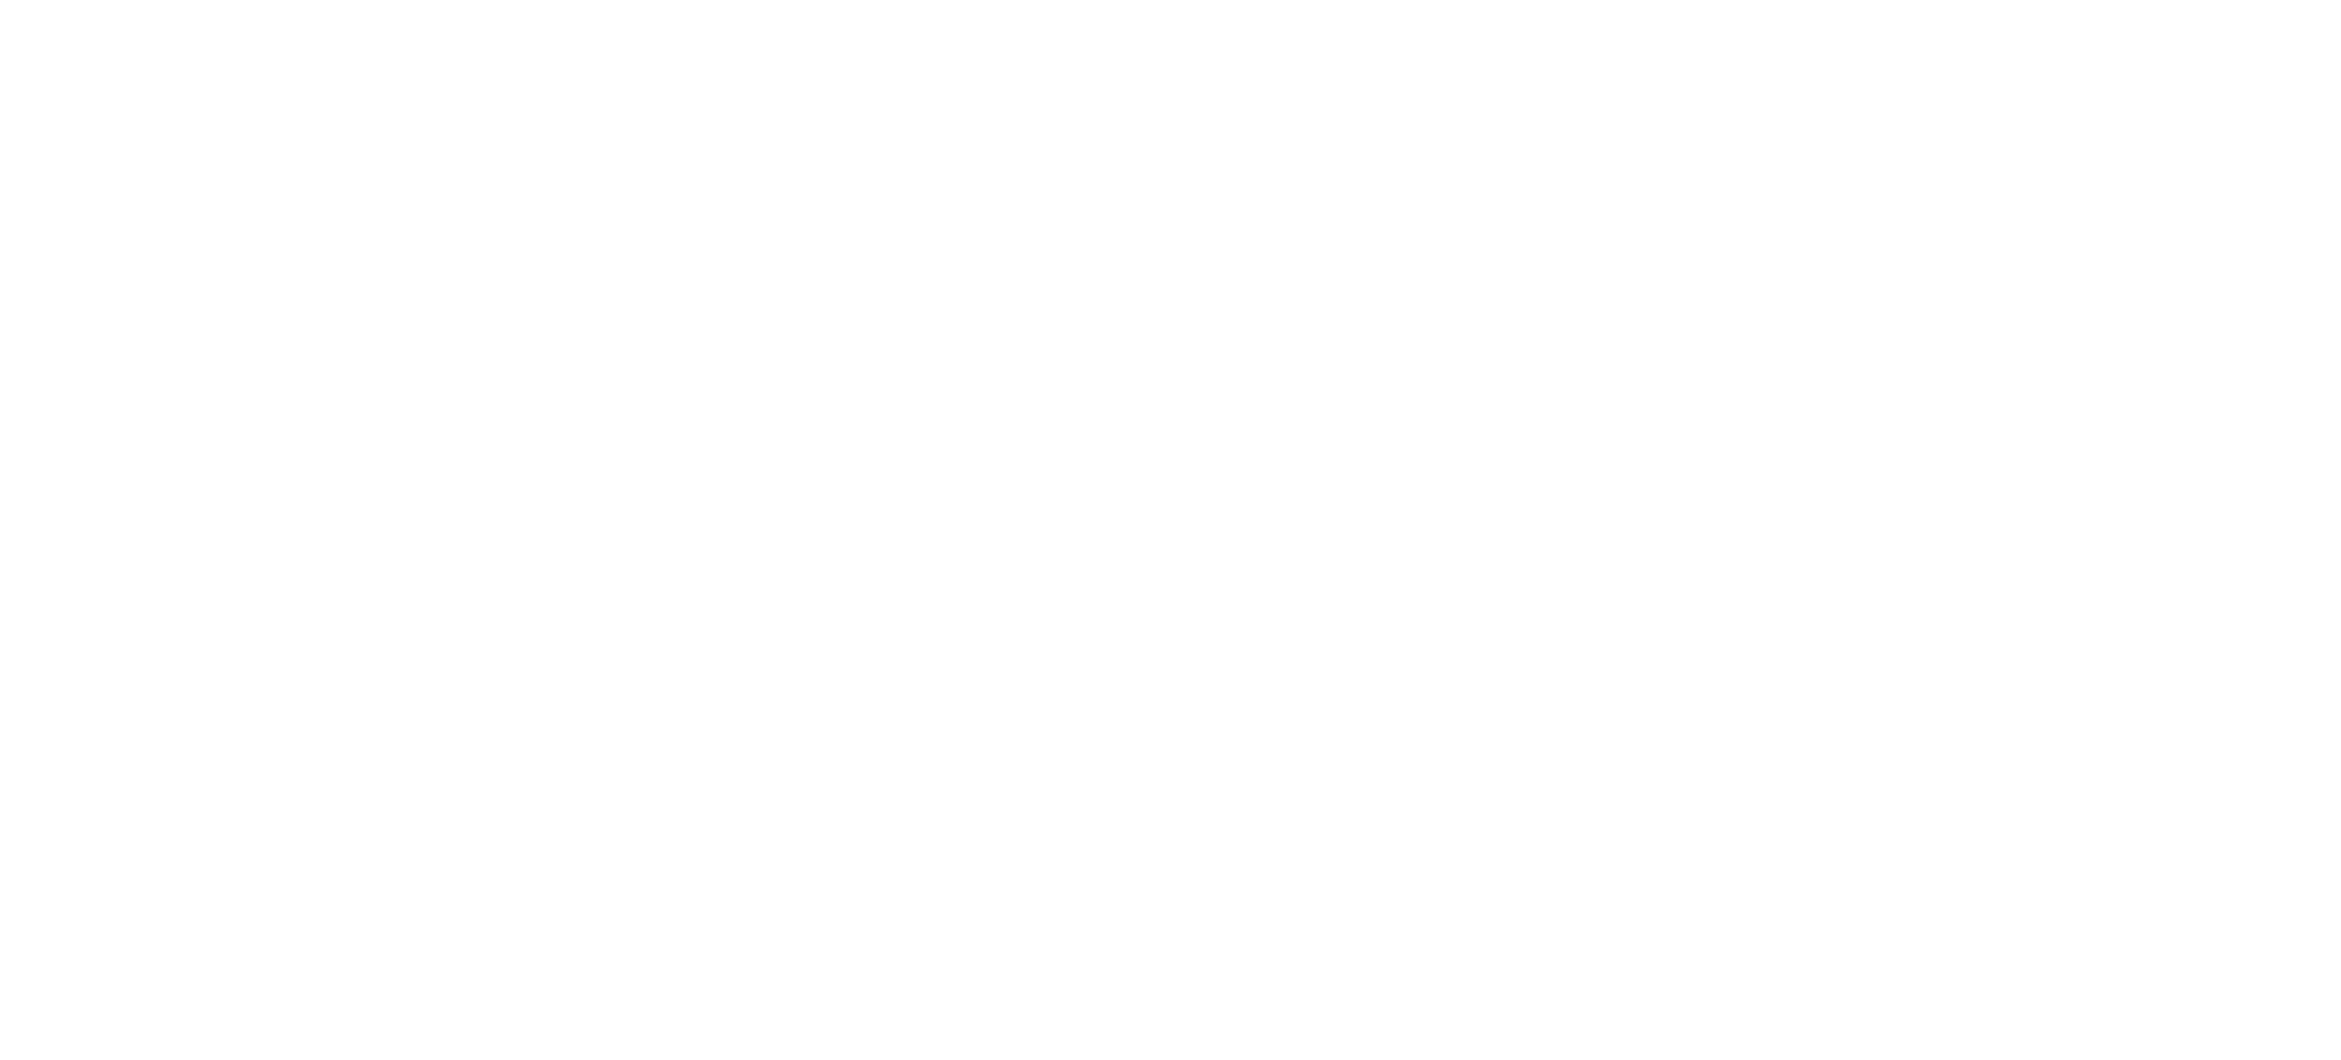 The Double Barrel Home